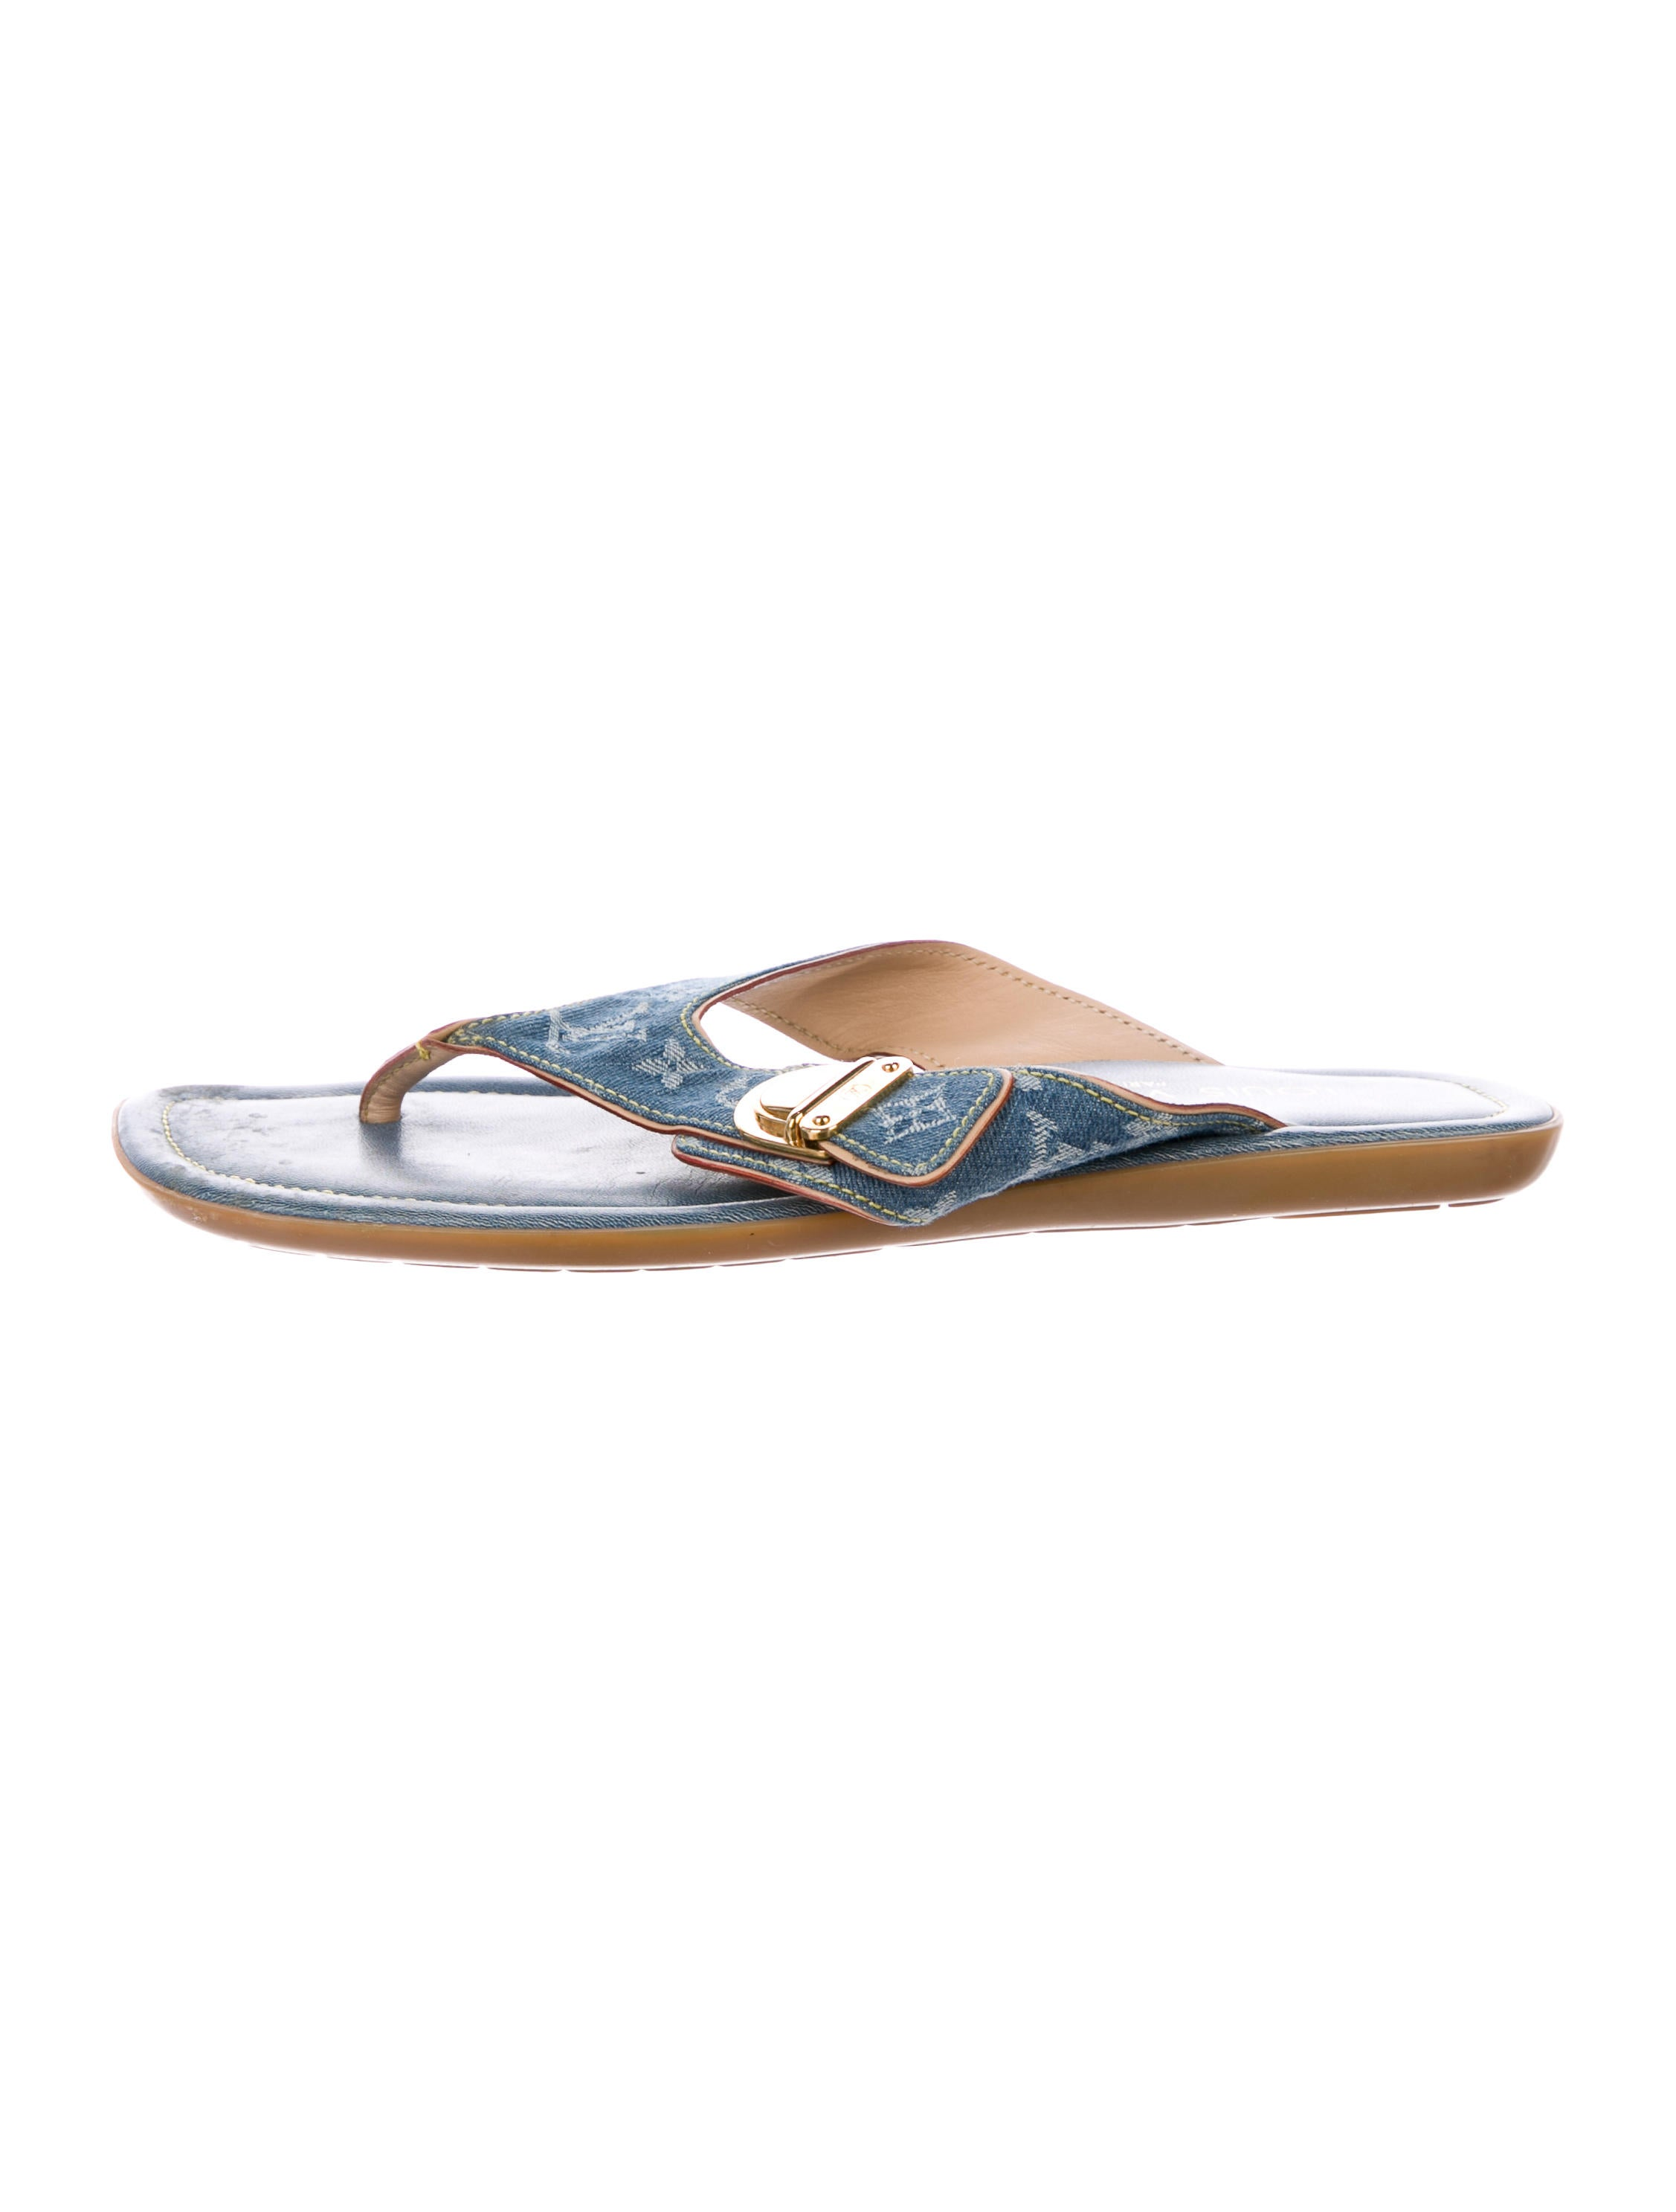 403641ba2e64 Louis Vuitton Monogram Idylle Thong Sandals - Shoes - LOU192257 ...